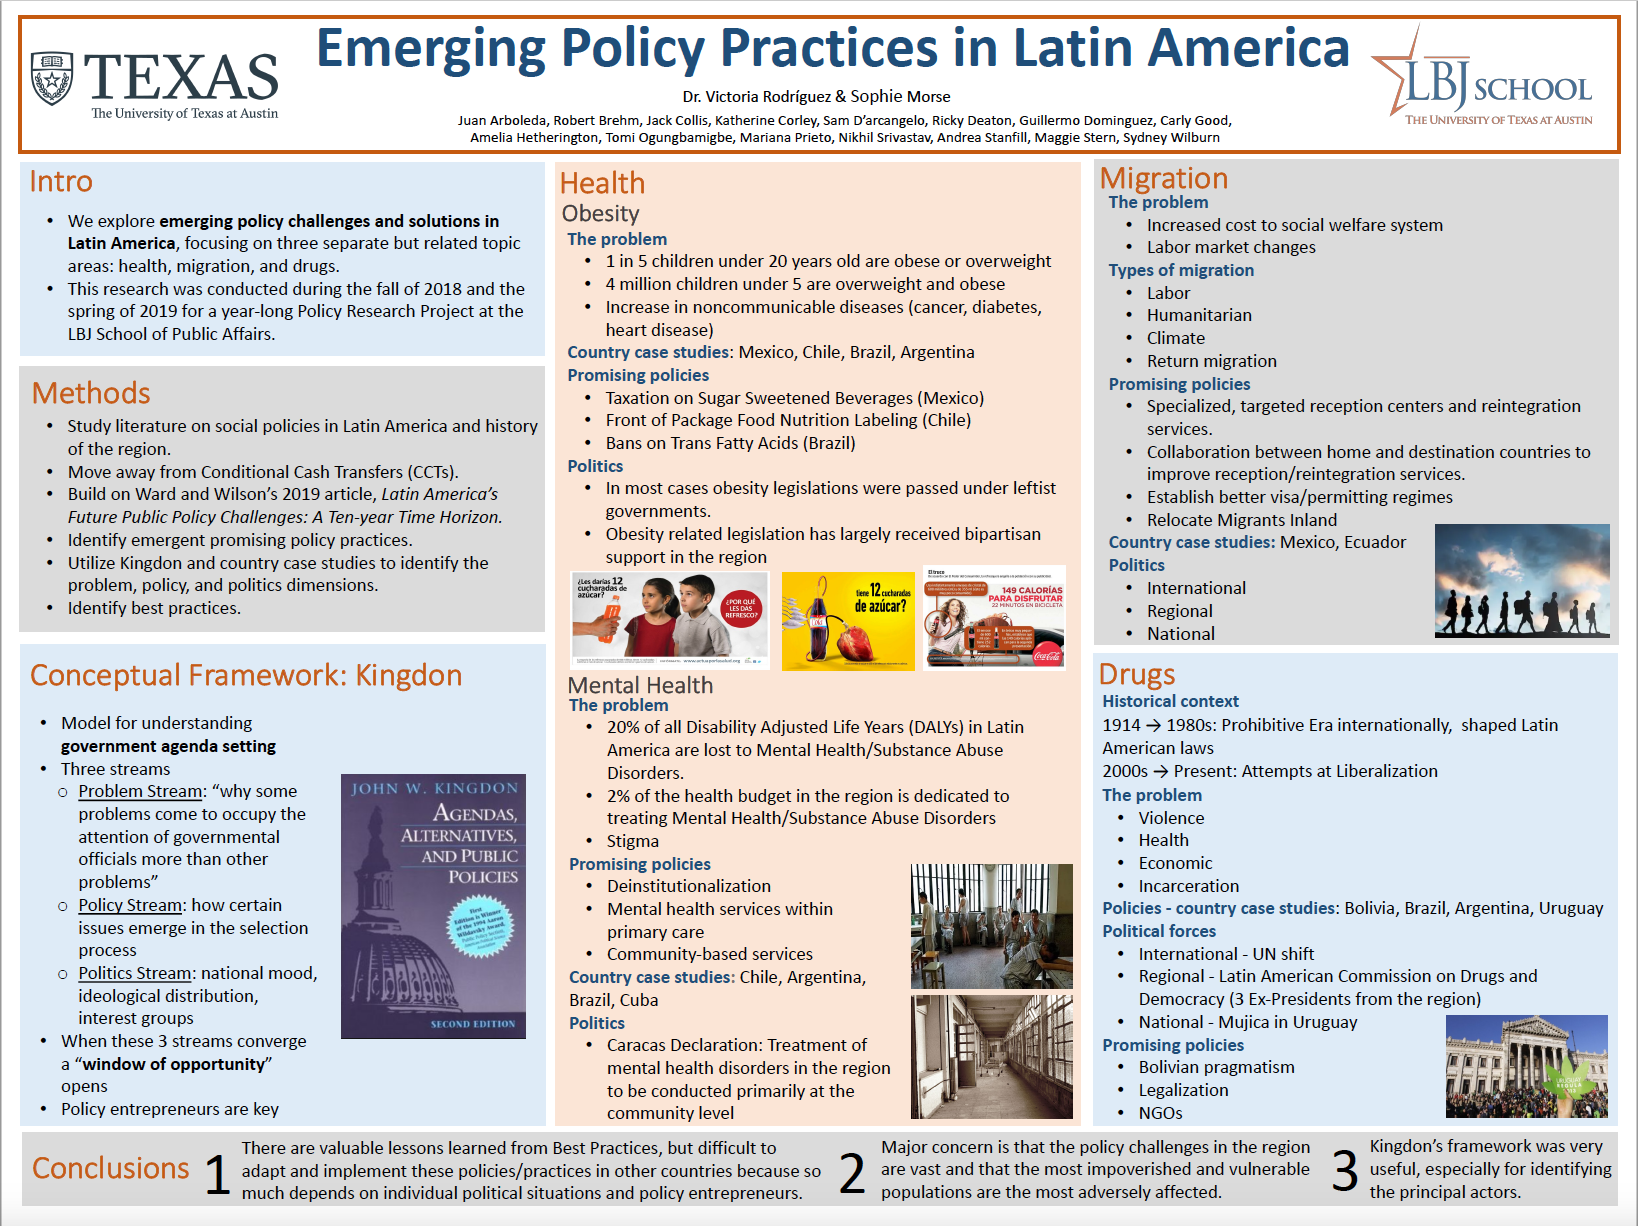 Innovation Bound 2019 research poster: Emerging Policy Practices in Latin America